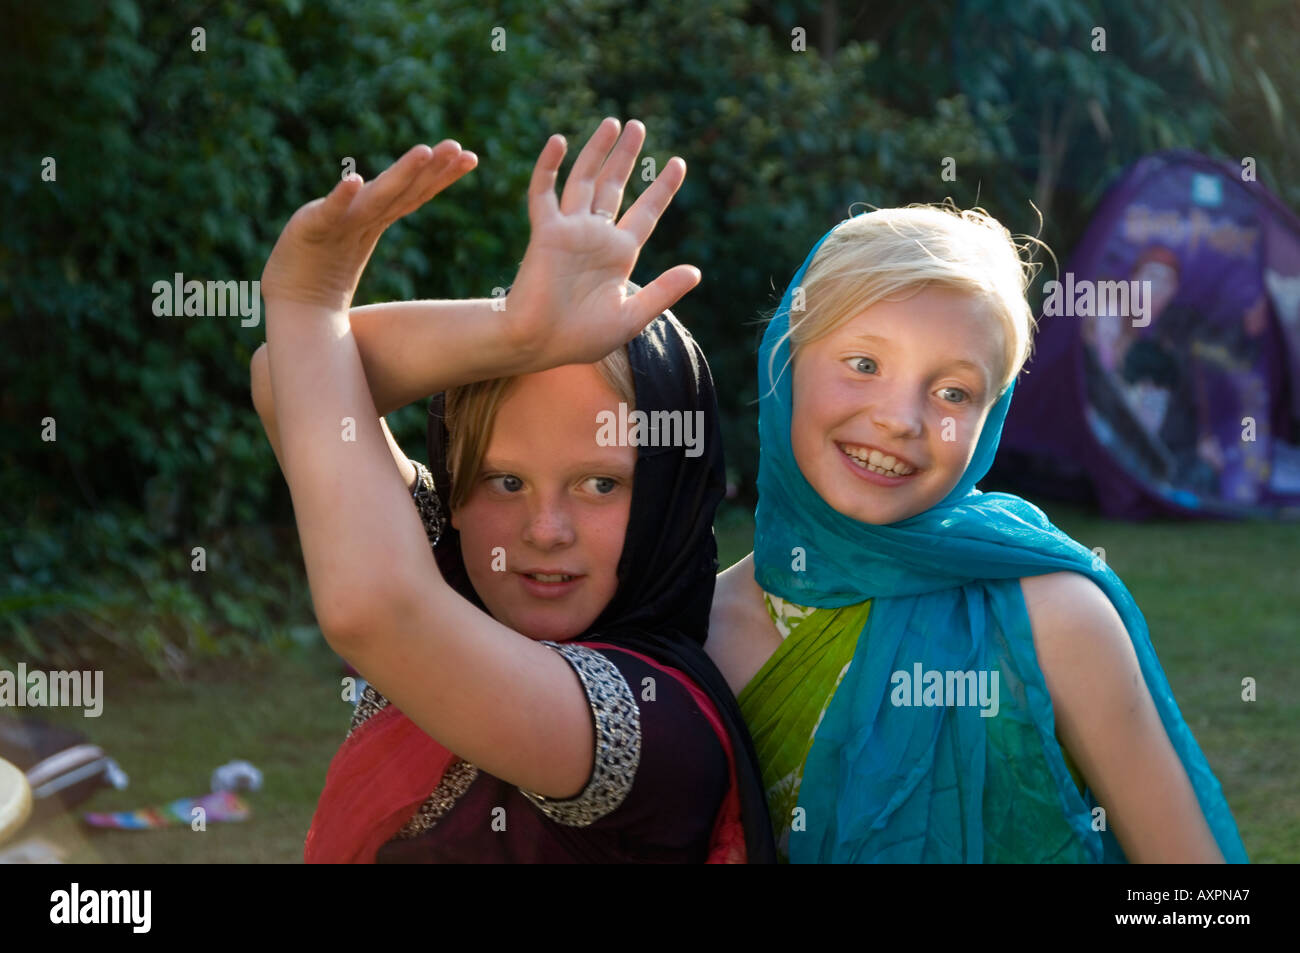 2 girls at play pretending to be indian princesses - Stock Image